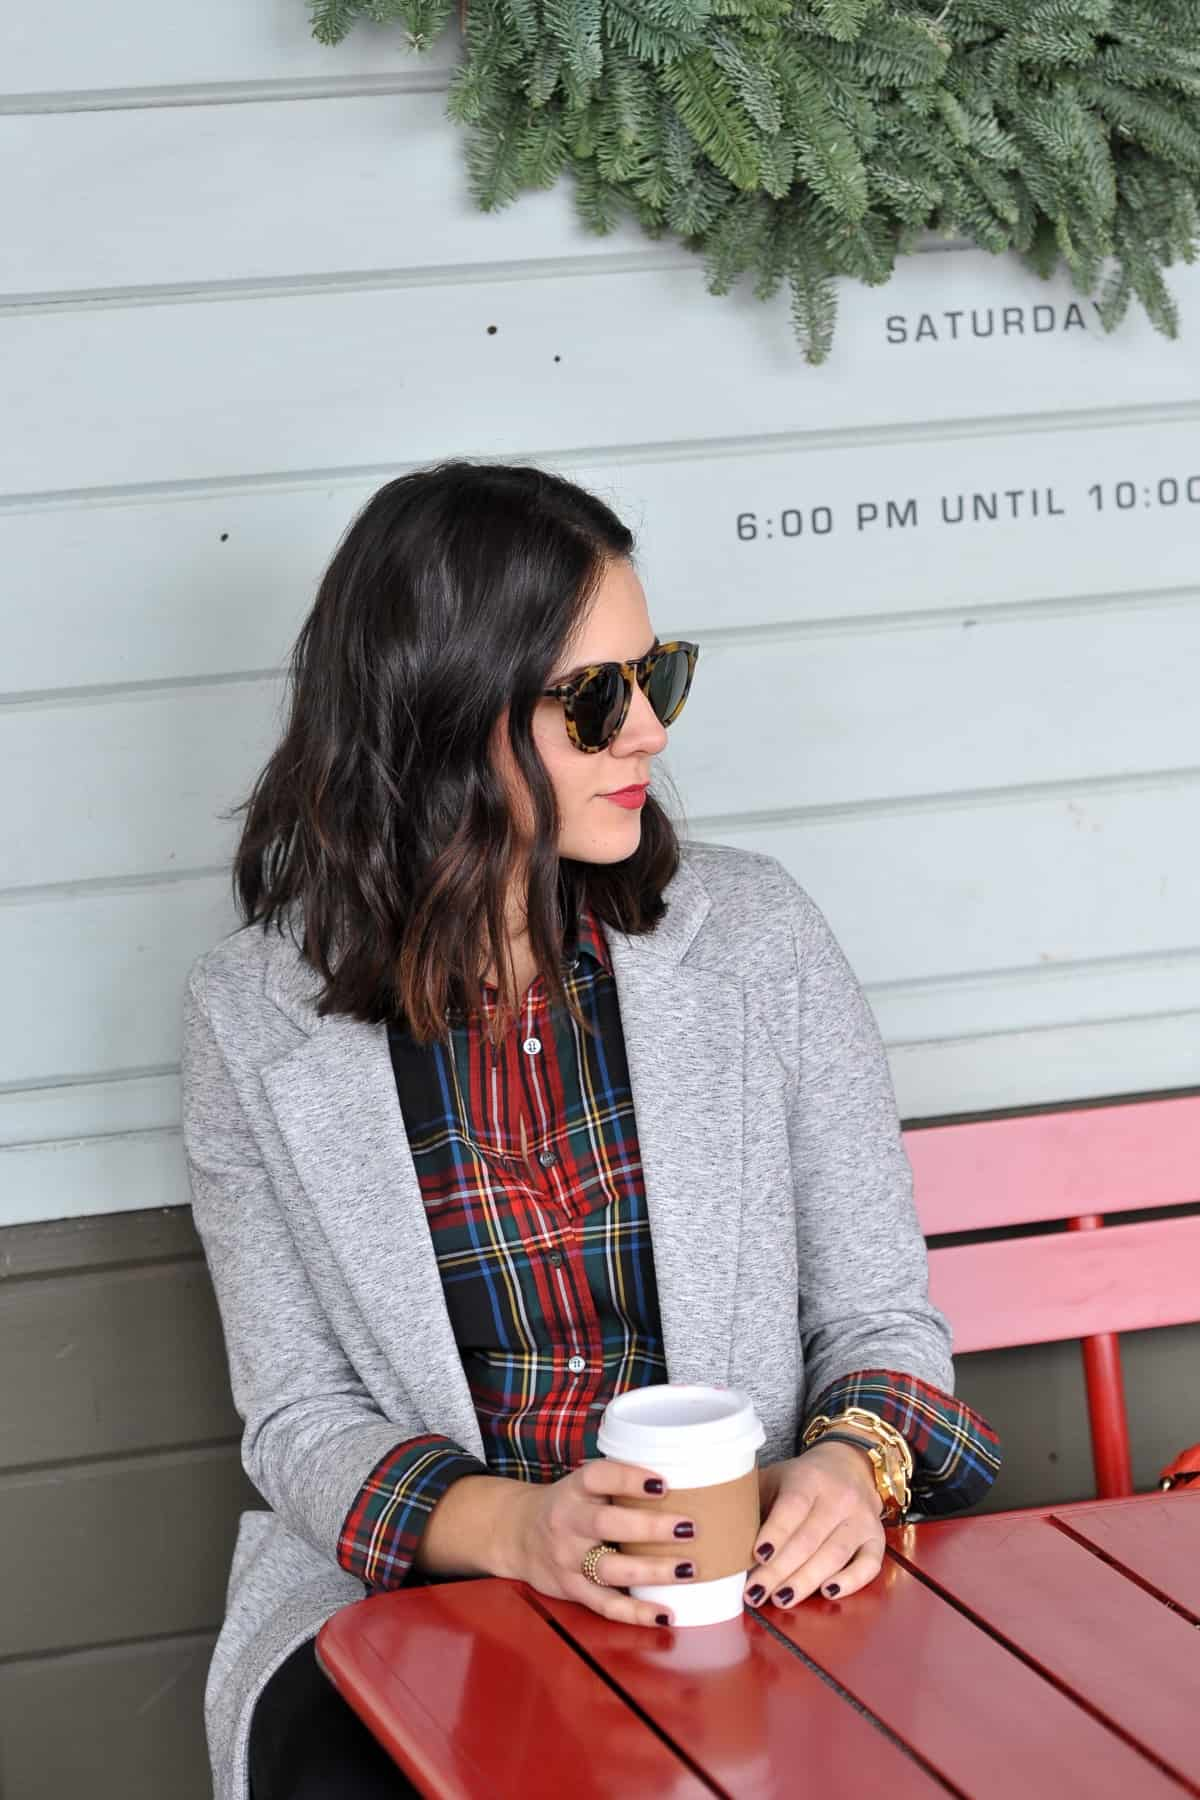 Plaid shirt and blazer - statement earrings, holiday outfit ideas, photos of coffee - @mystylevita